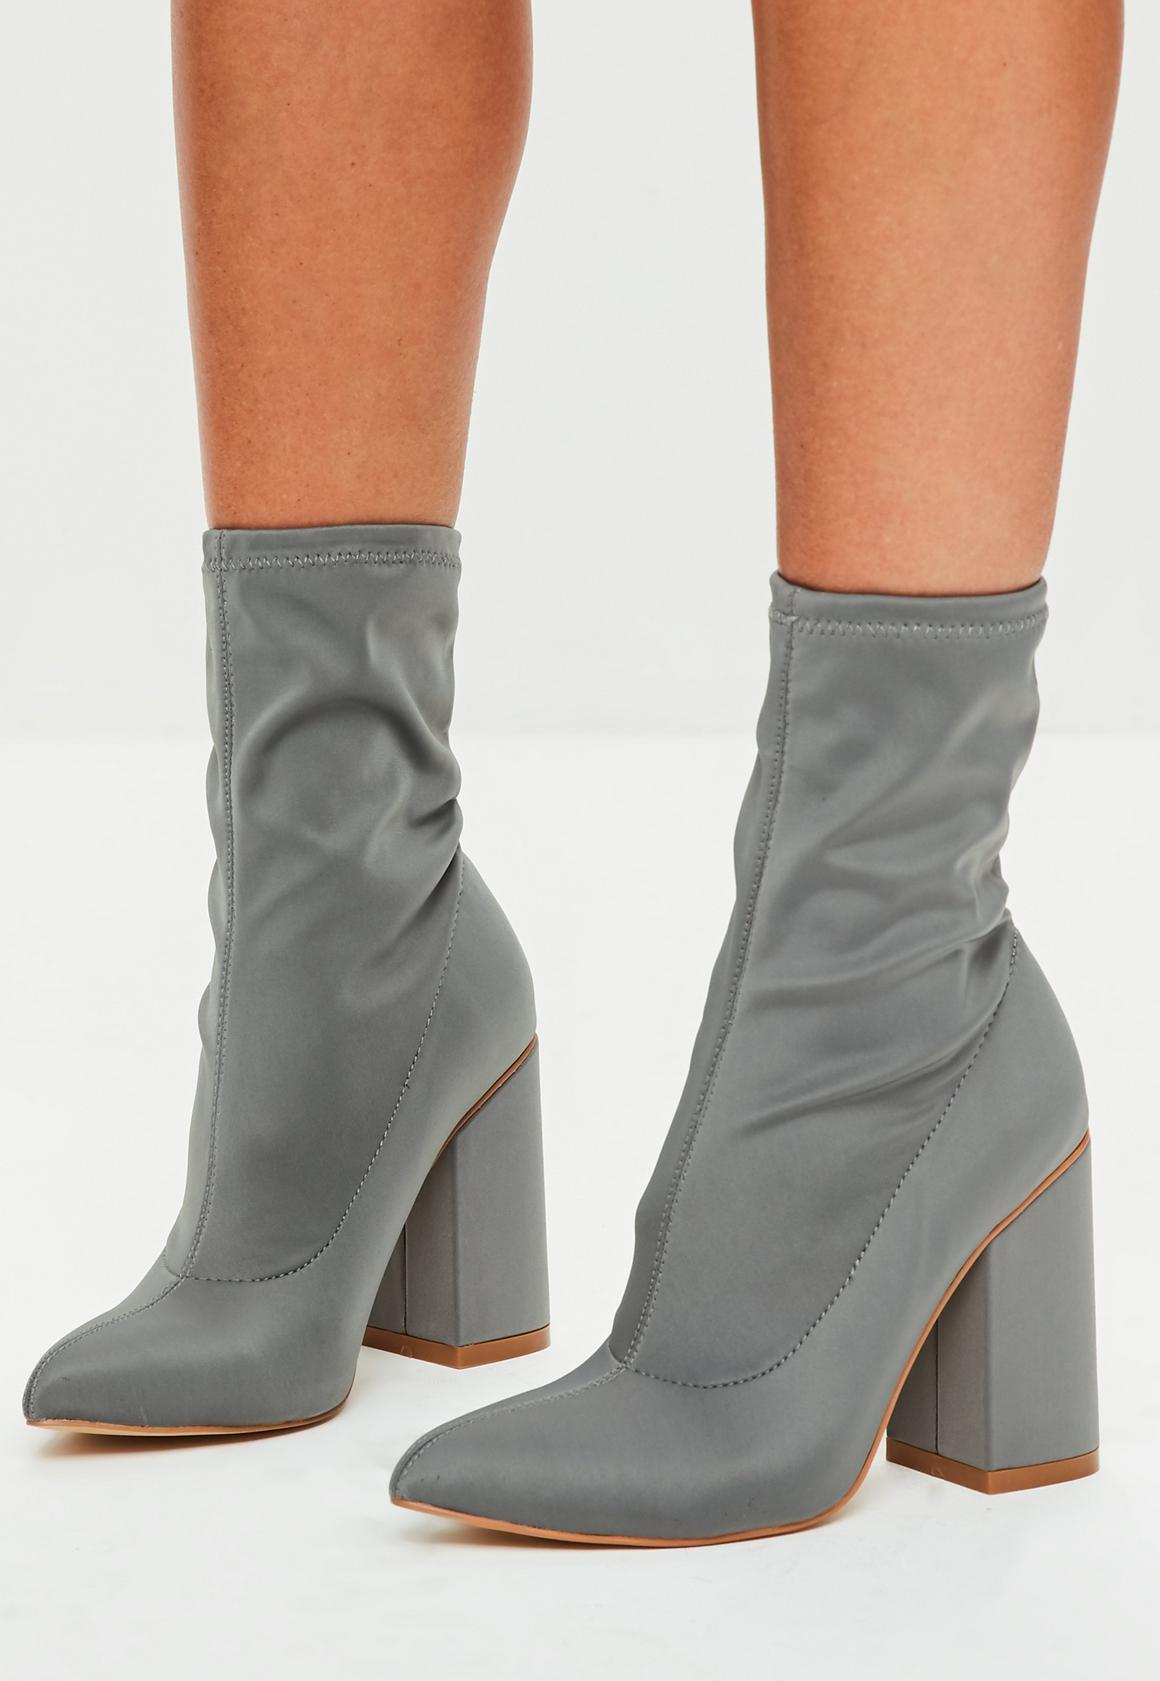 bottines grises pointues à talon carré | missguided